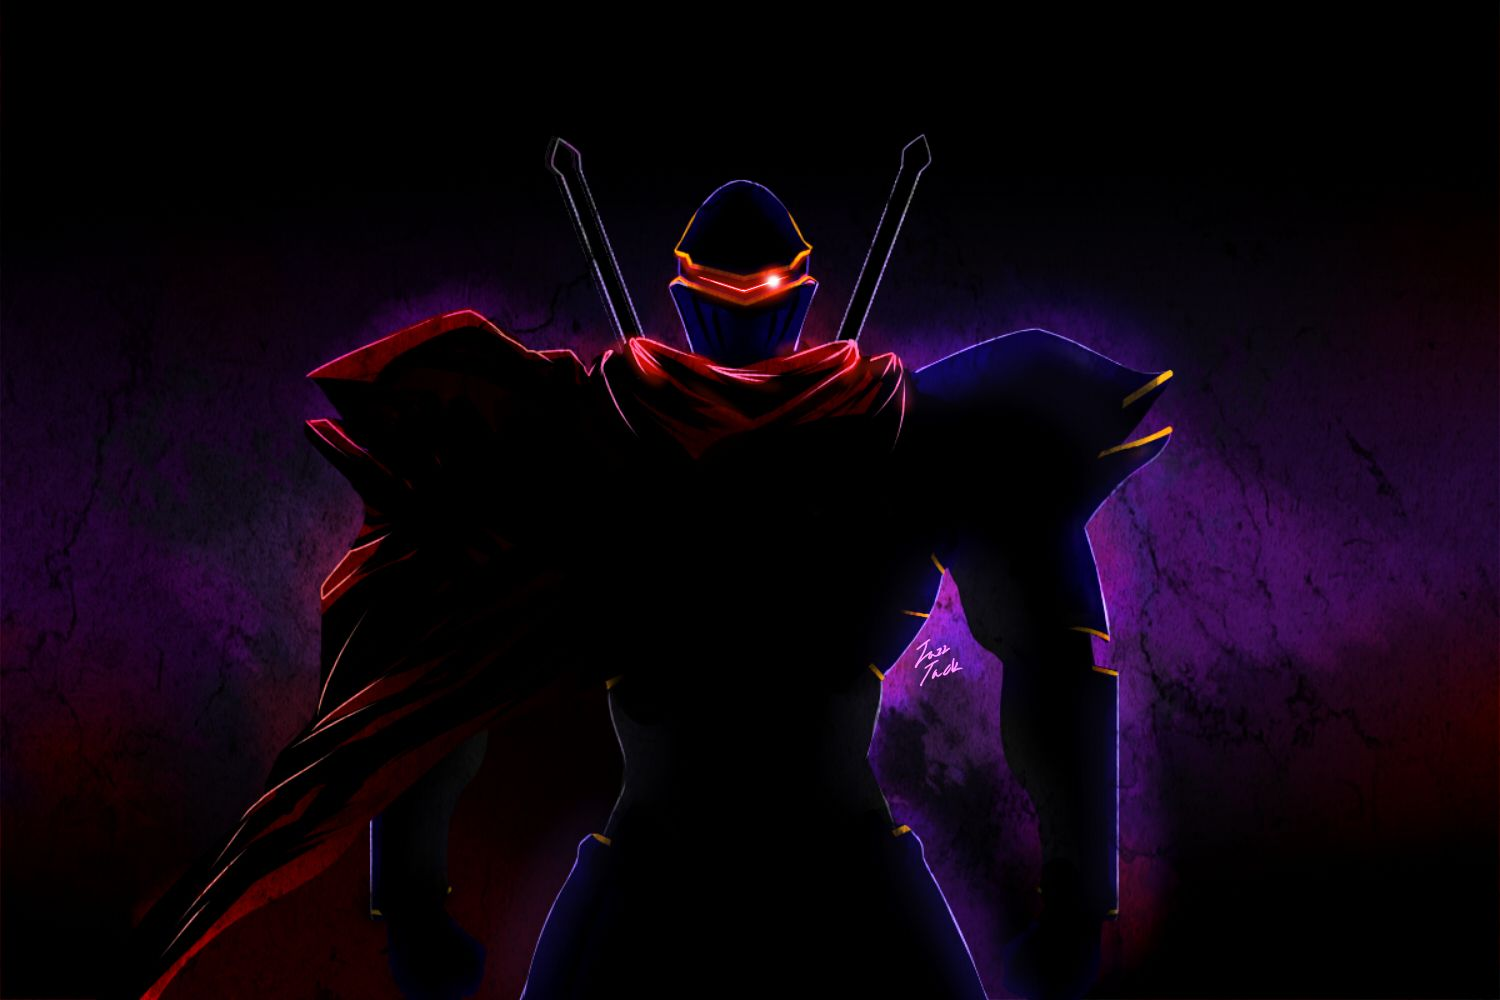 Overlord Computer Wallpapers Desktop Backgrounds 1500x1000 Id 629054 Skull Illustration Anime Wallpaper Character Wallpaper